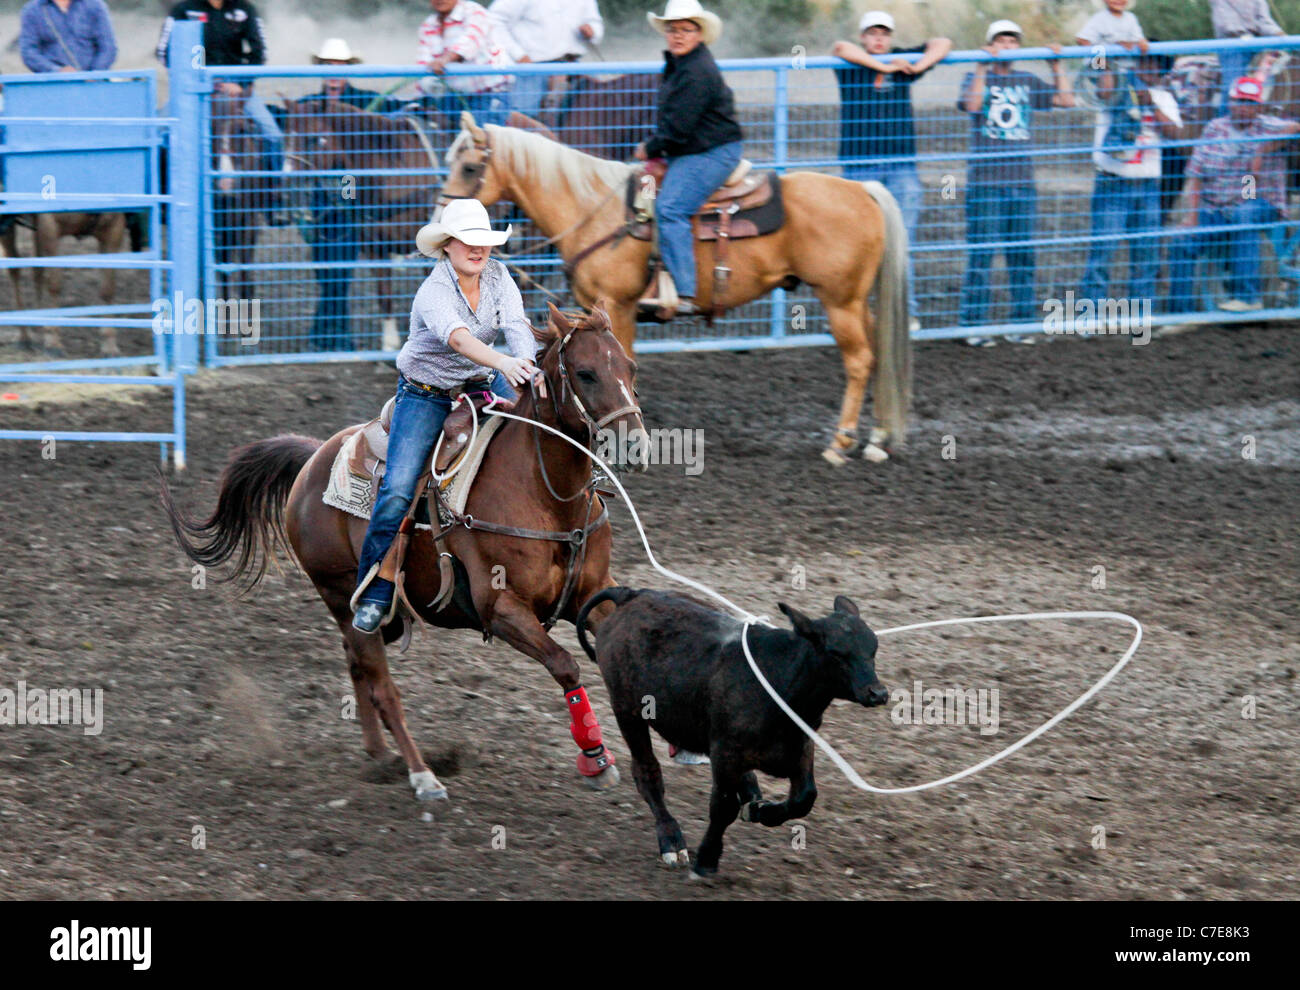 Woman competing in the breakaway event in the rodeo held on the Fort Hall reservation in Wyoming. - Stock Image